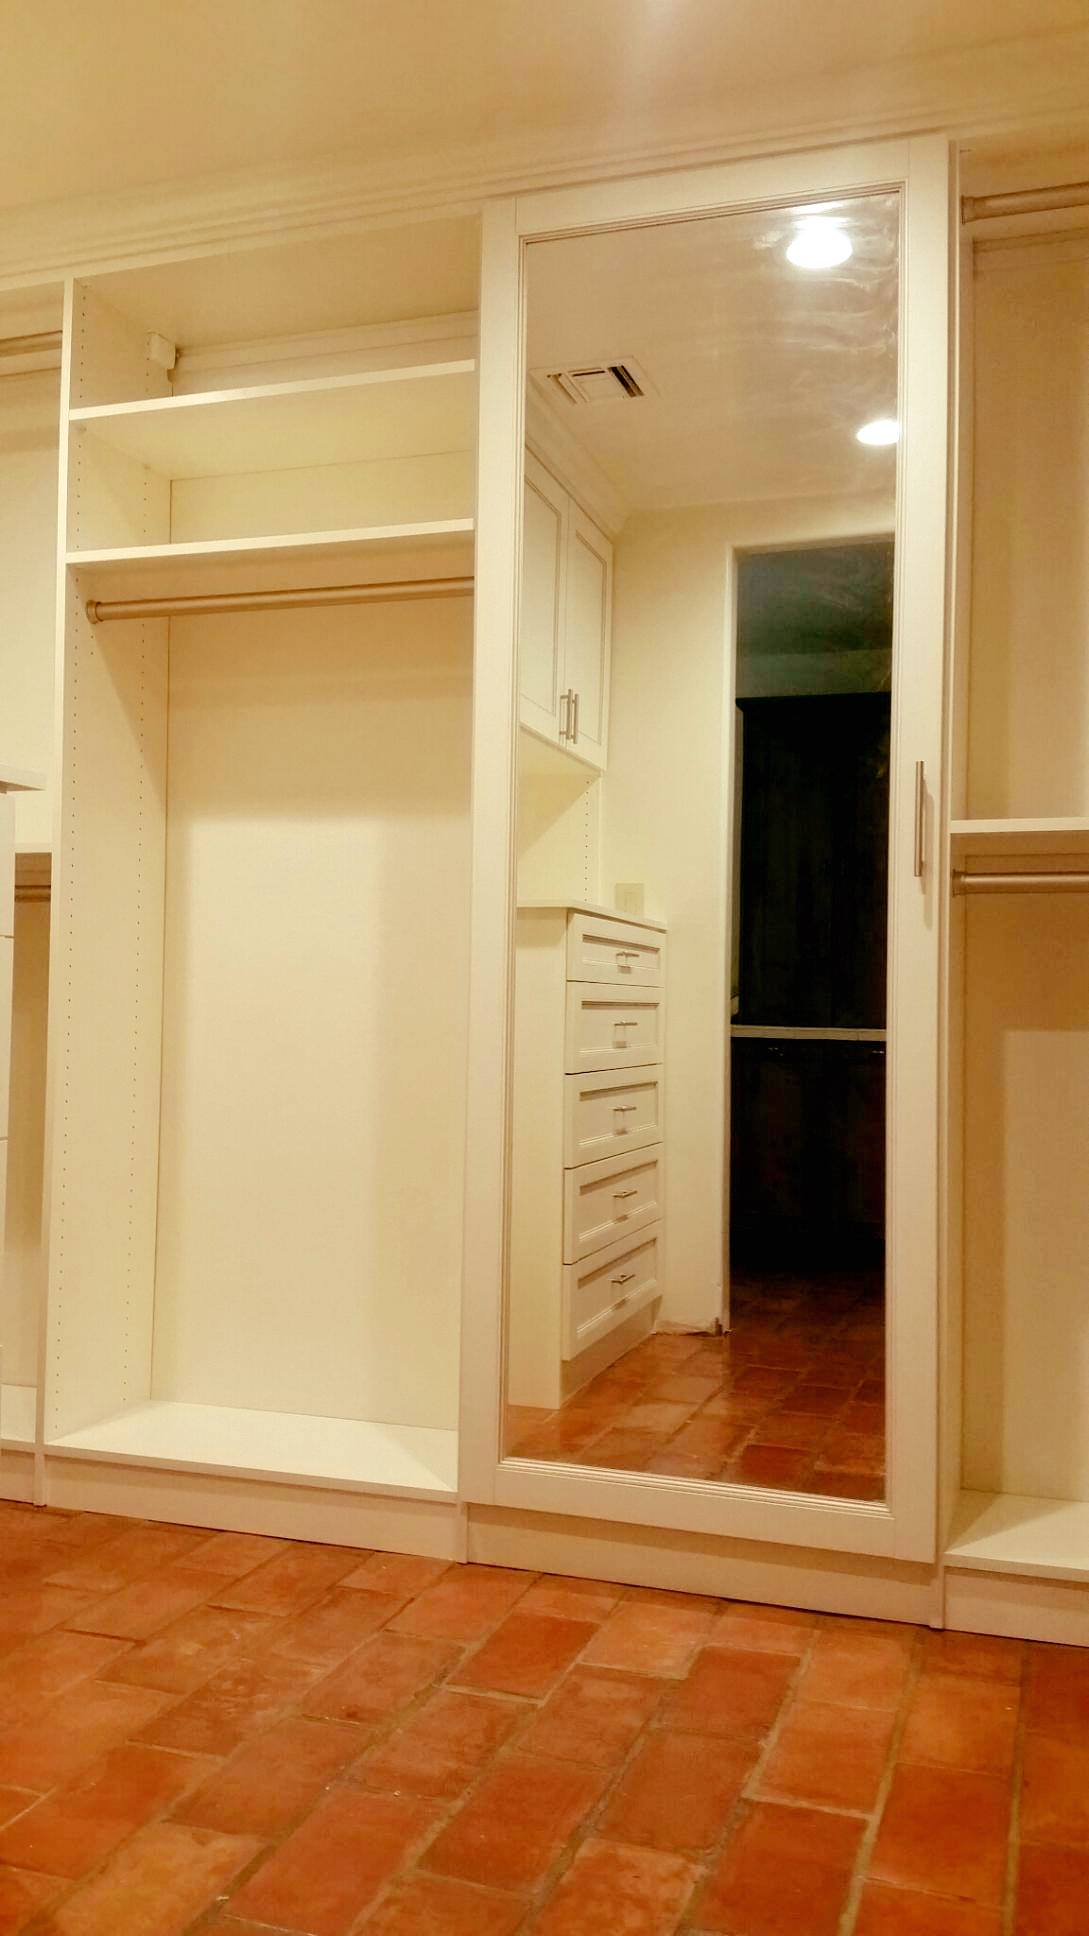 Mirror on built-in closet cabinet